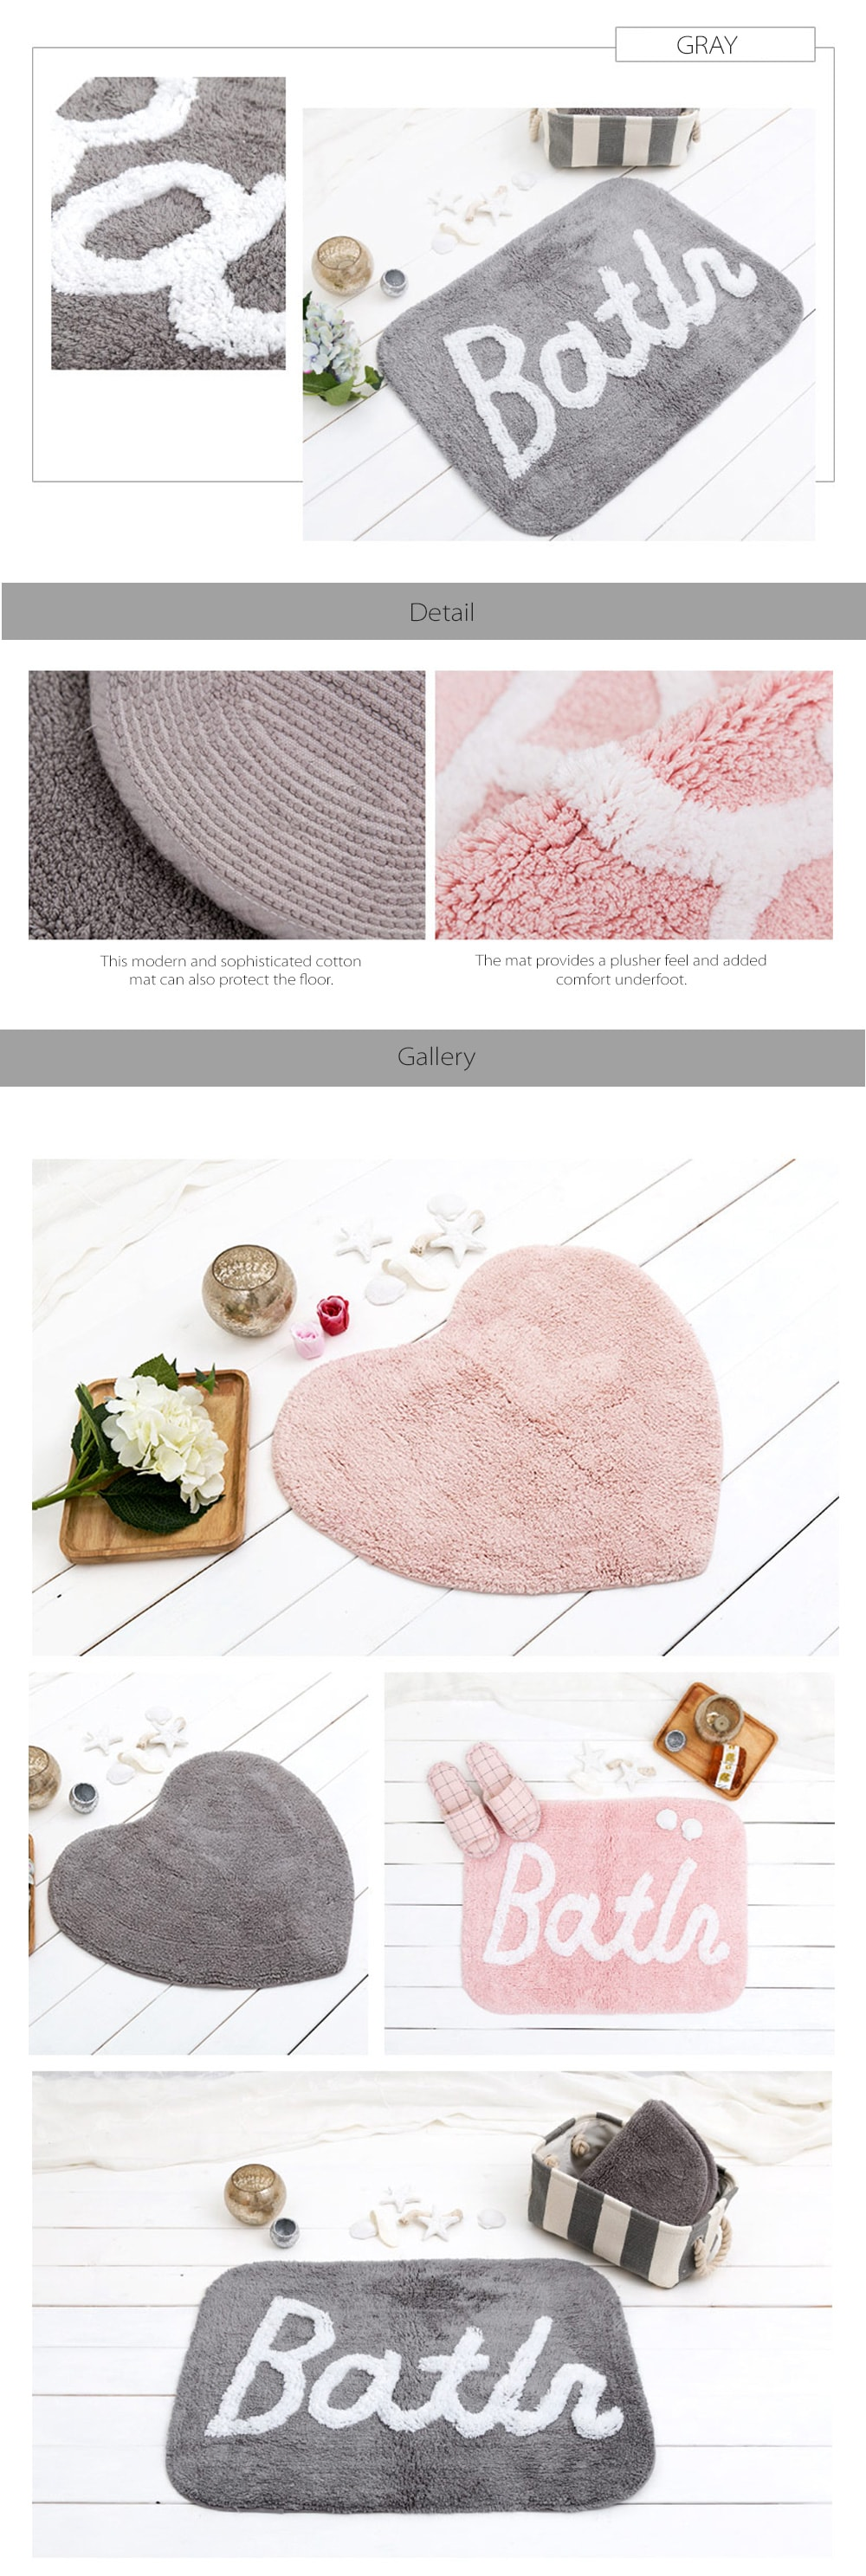 Cotton Bath Rugs Lovely Bath Rugs for Your Bathroom